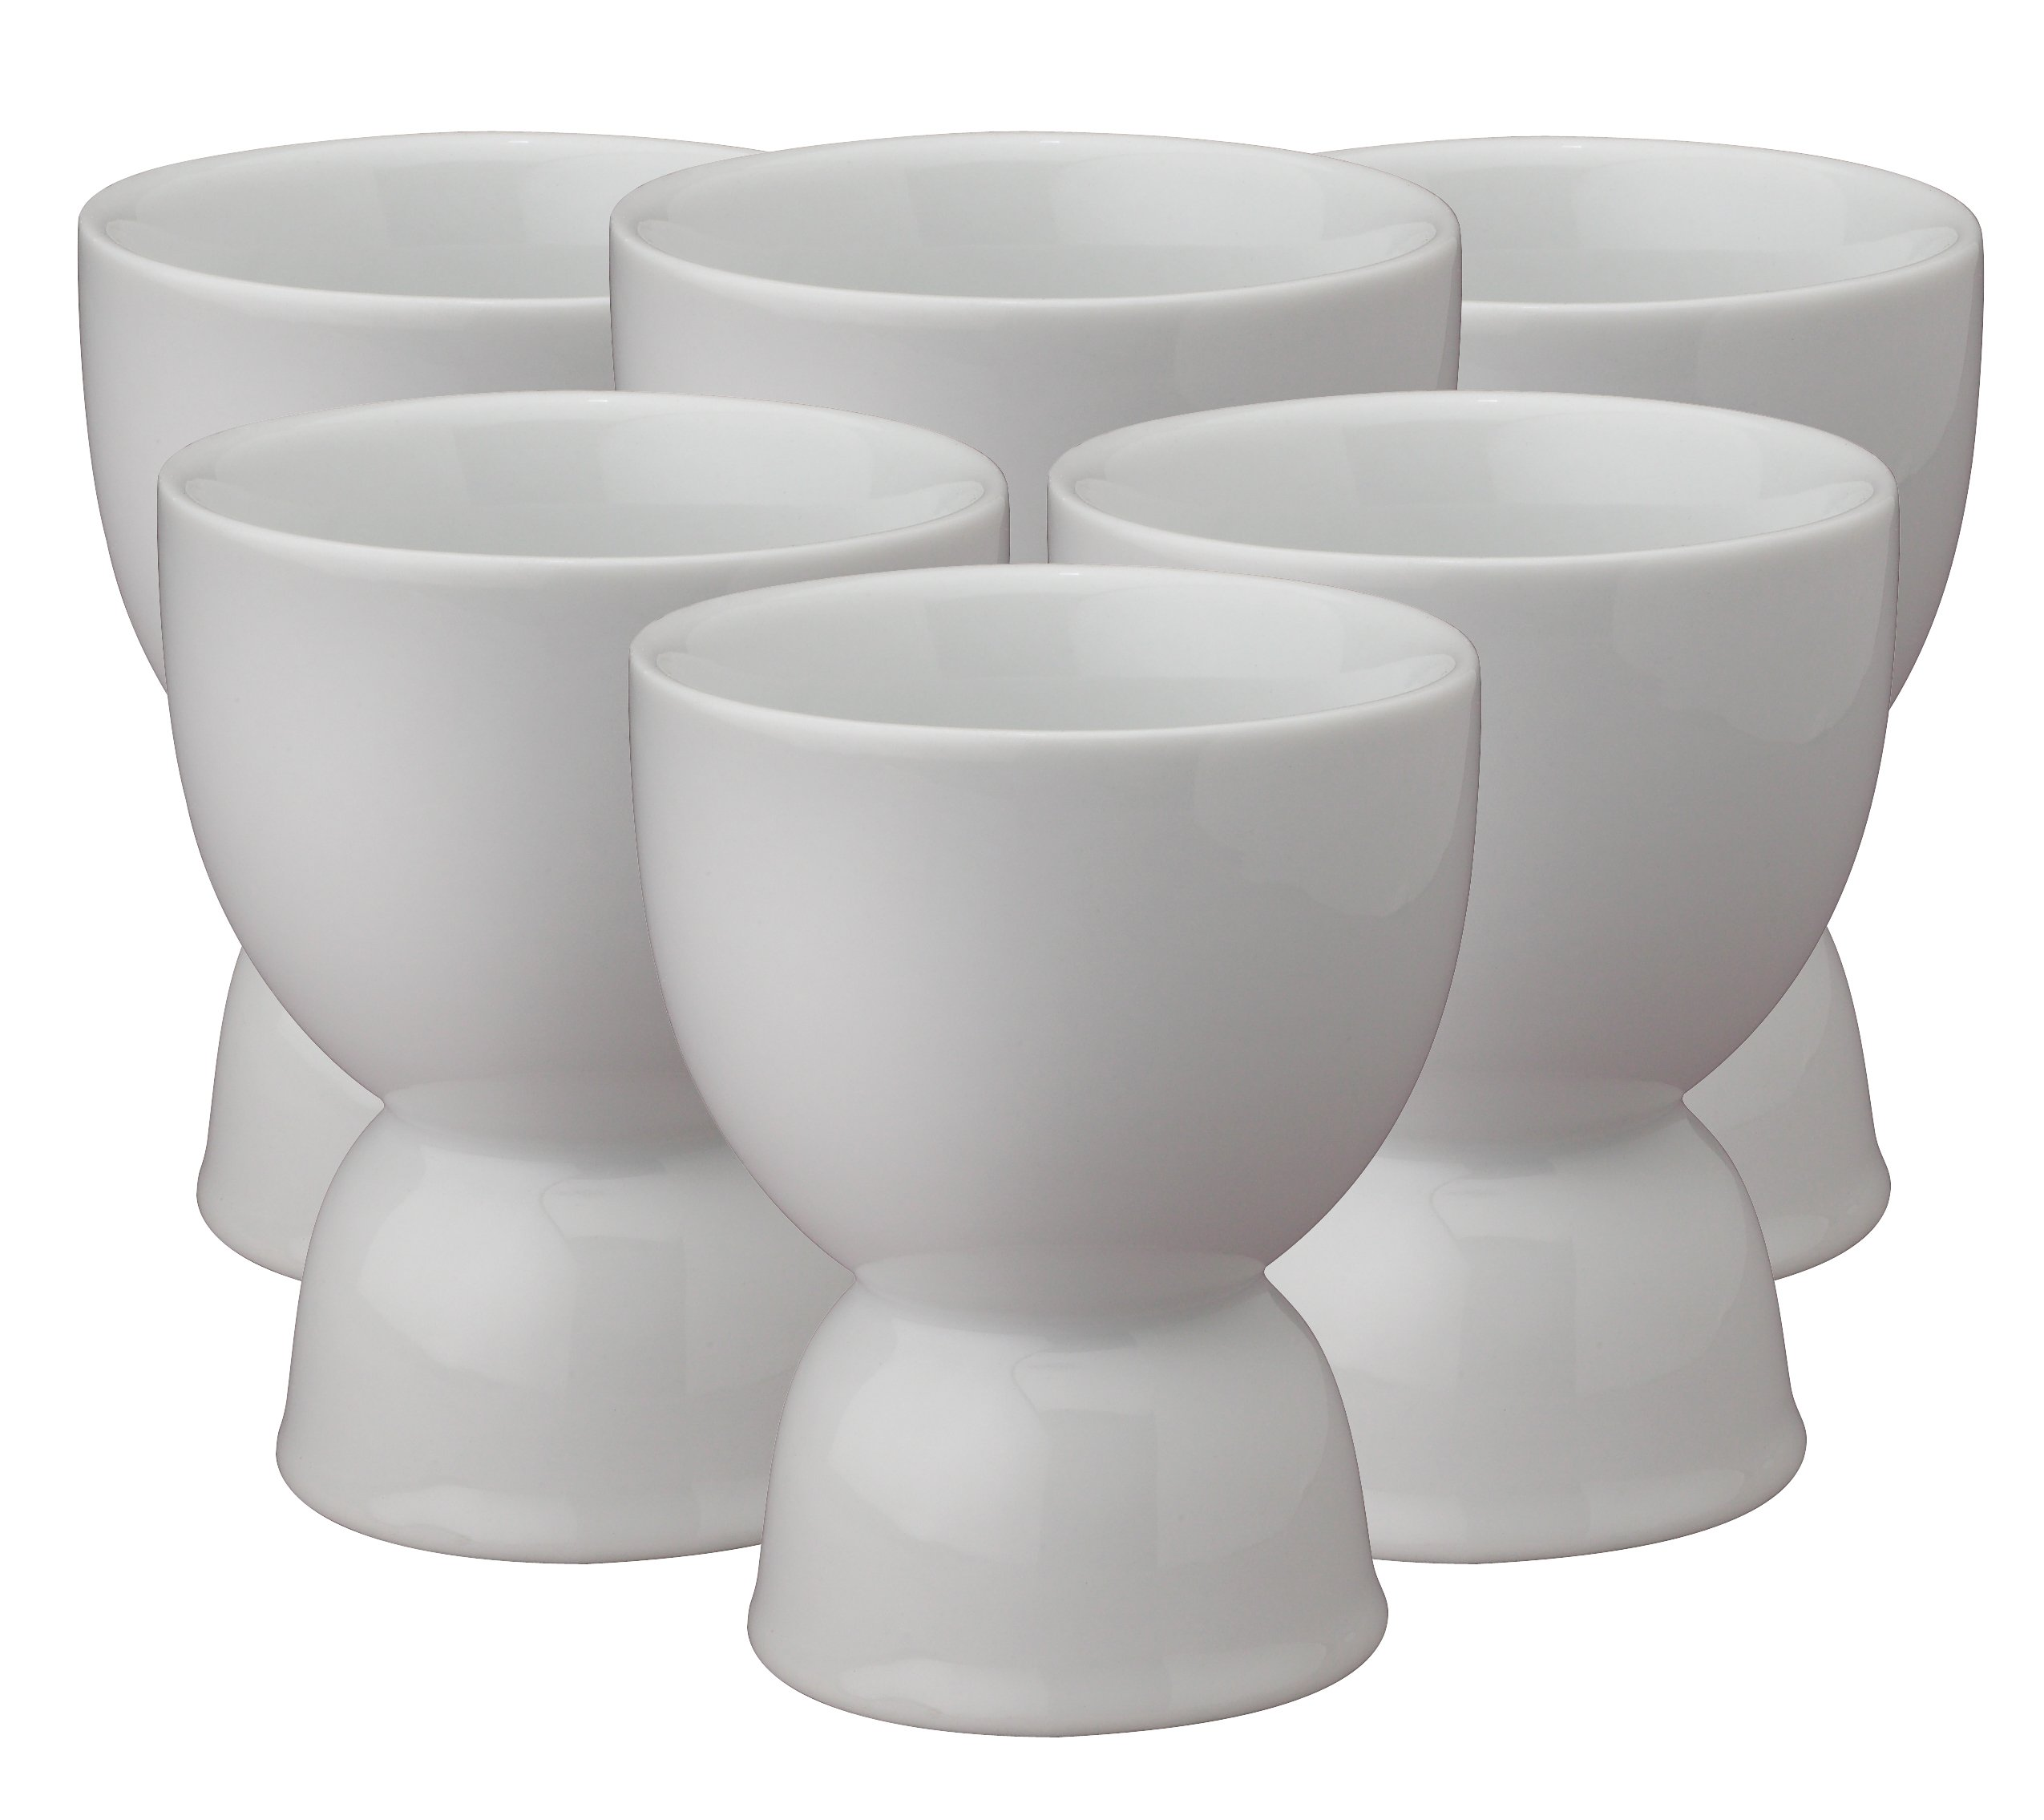 HIC Harold Import Co. 400220/6 HIC Double Egg Cups, Fine Porcelain, White, Set of 6,